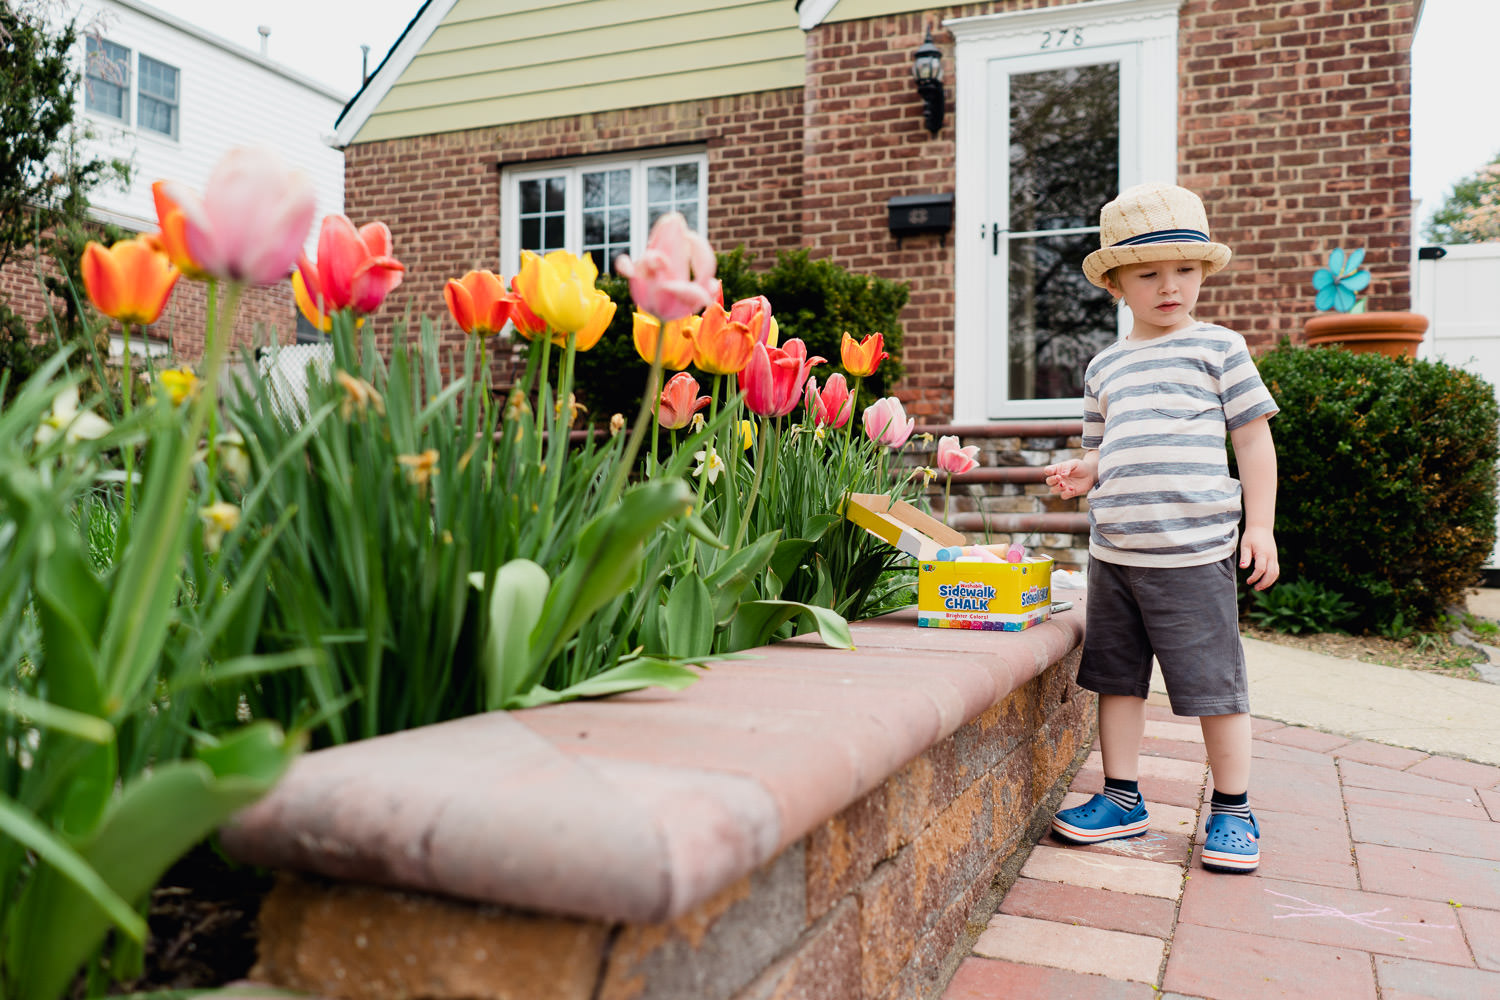 A little boy stands in front of some tulips in a front yard.